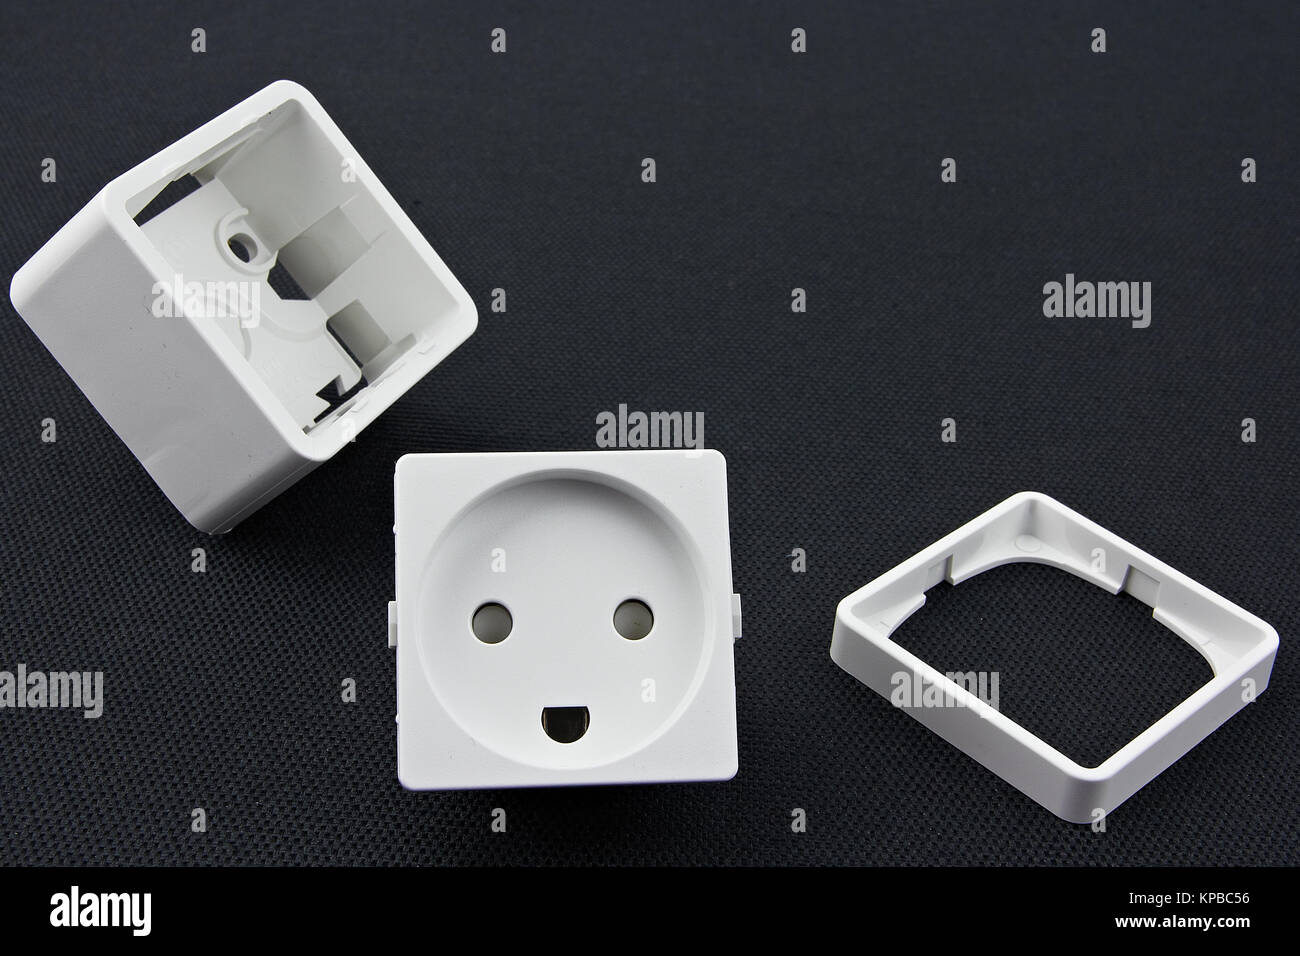 Dismantled electrical outlet lying on a black surface - Stock Image